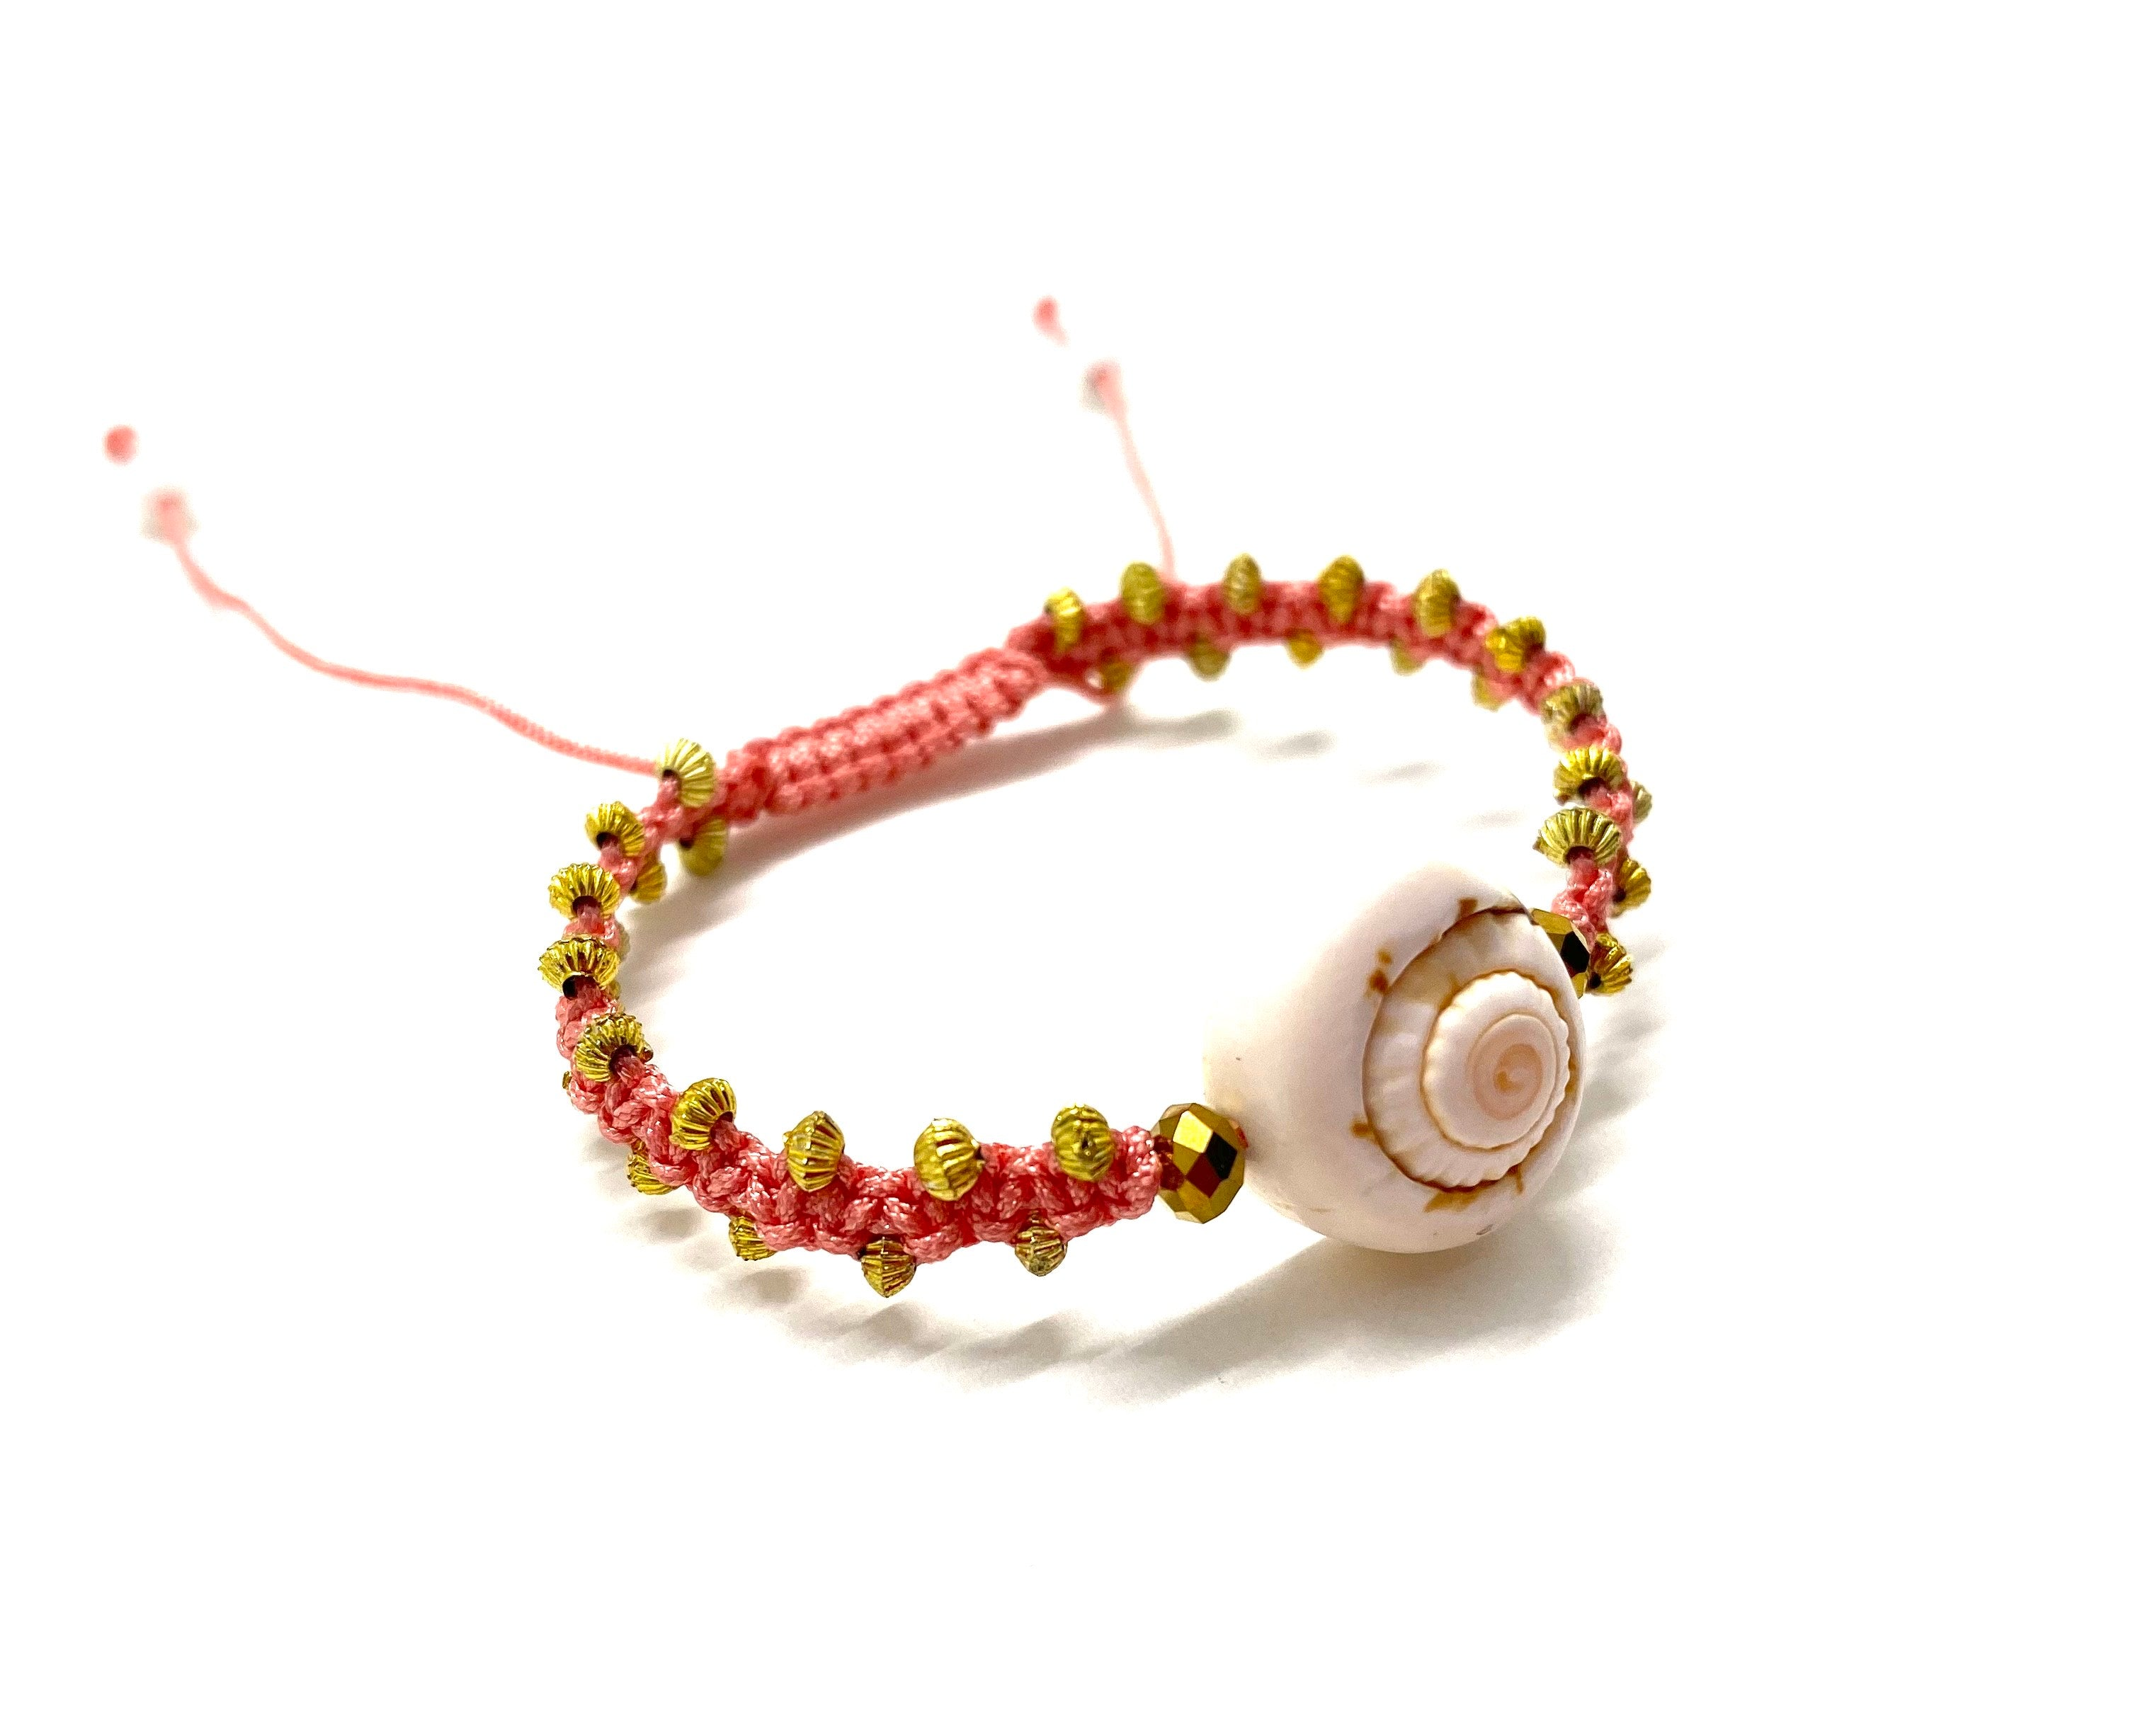 Seashell bracelet gold Swarovski bead, gold toupee and salmon braided cord